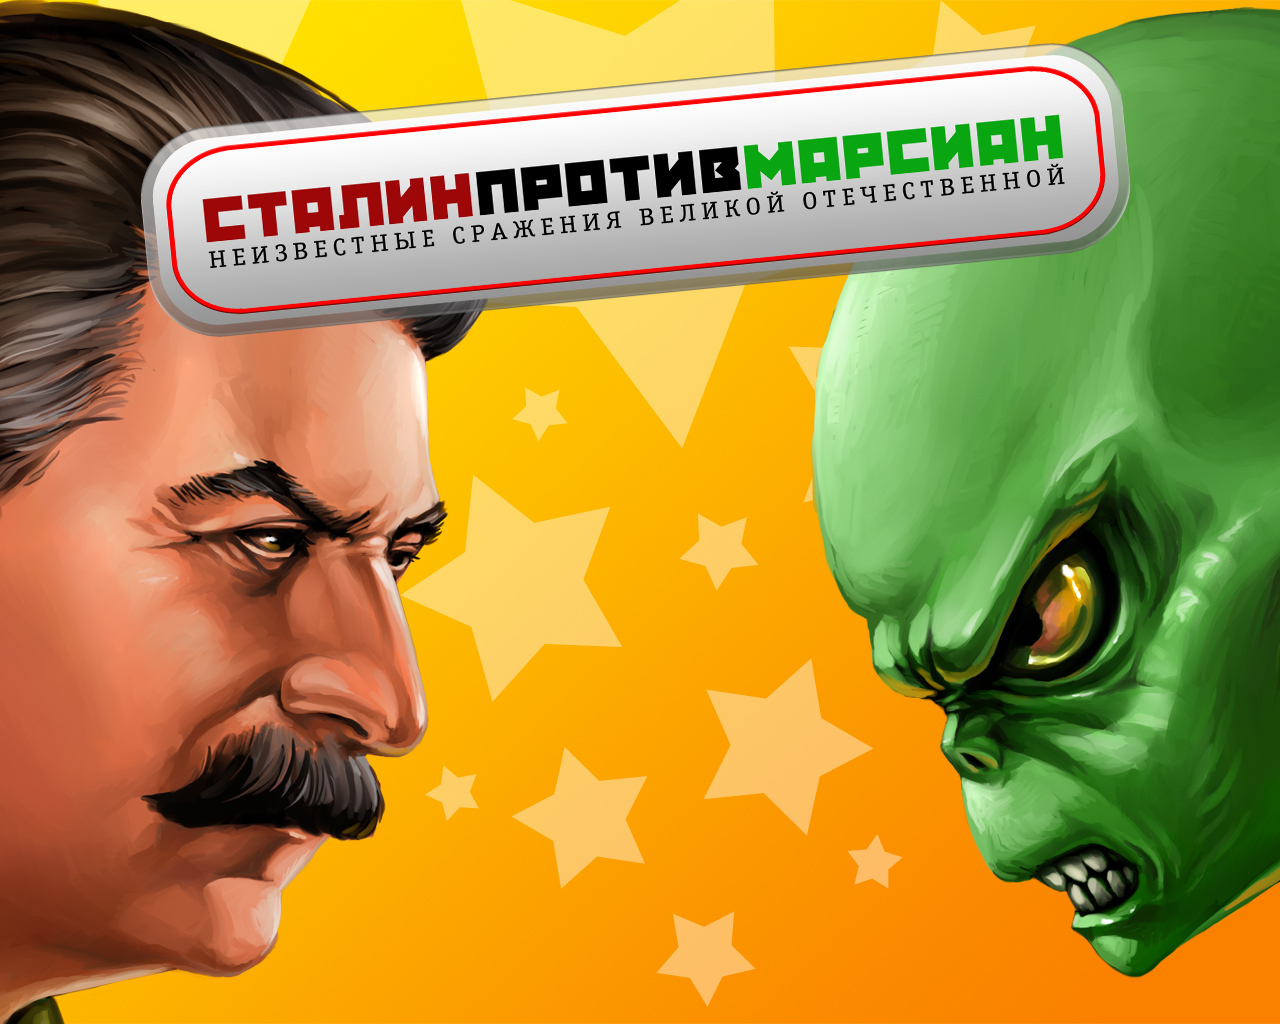 http://www.igroport.ru/games_img/63650_stalin_vs_the_martians-5.jpg